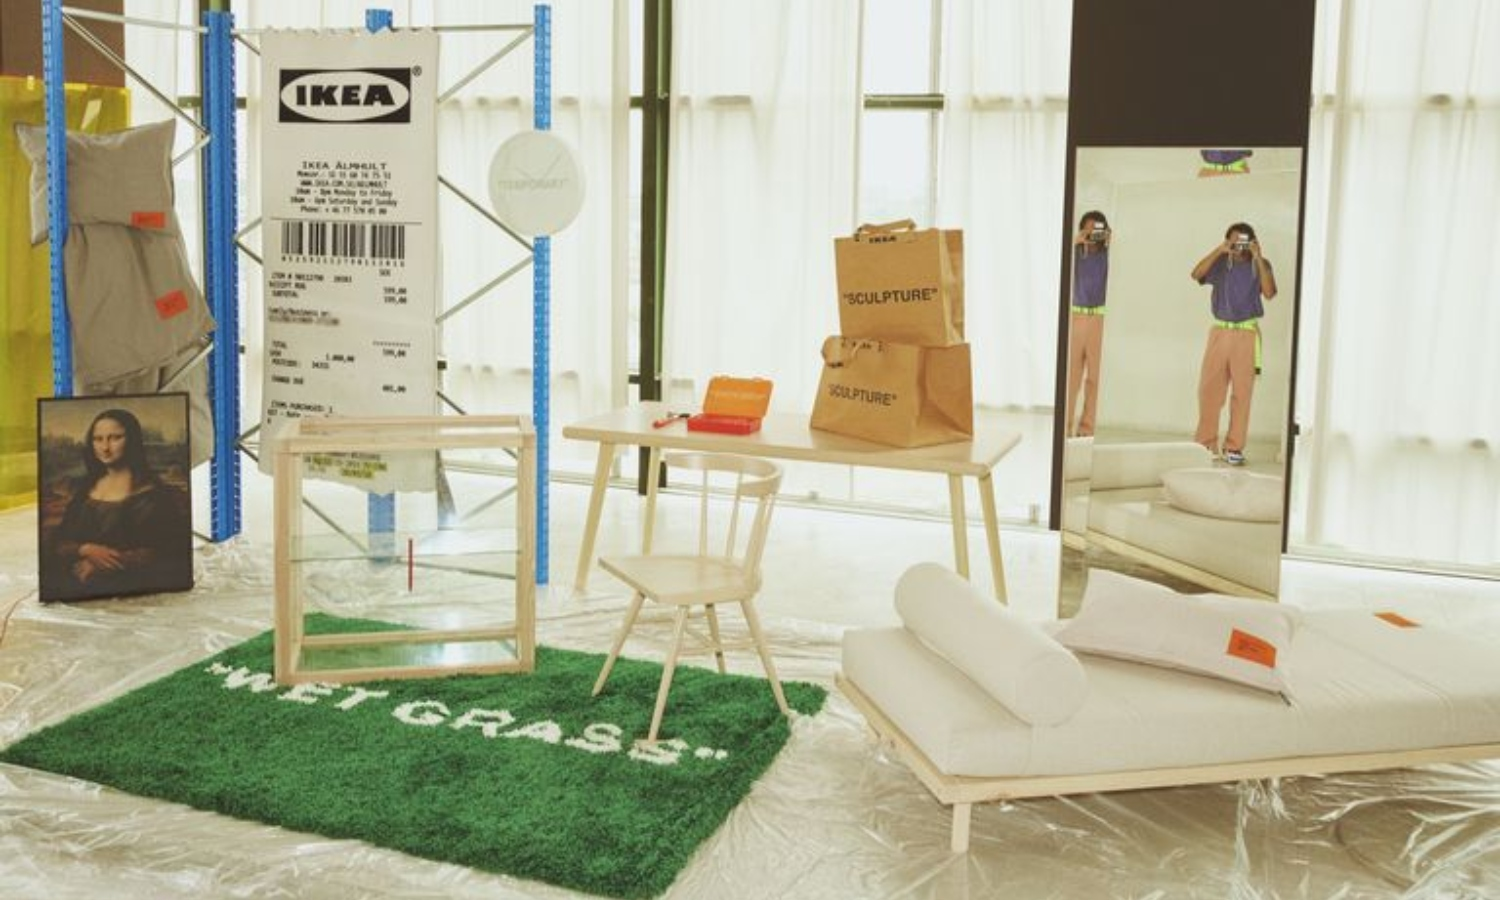 Virgil Abloh launches his limited-edition Ikea collection